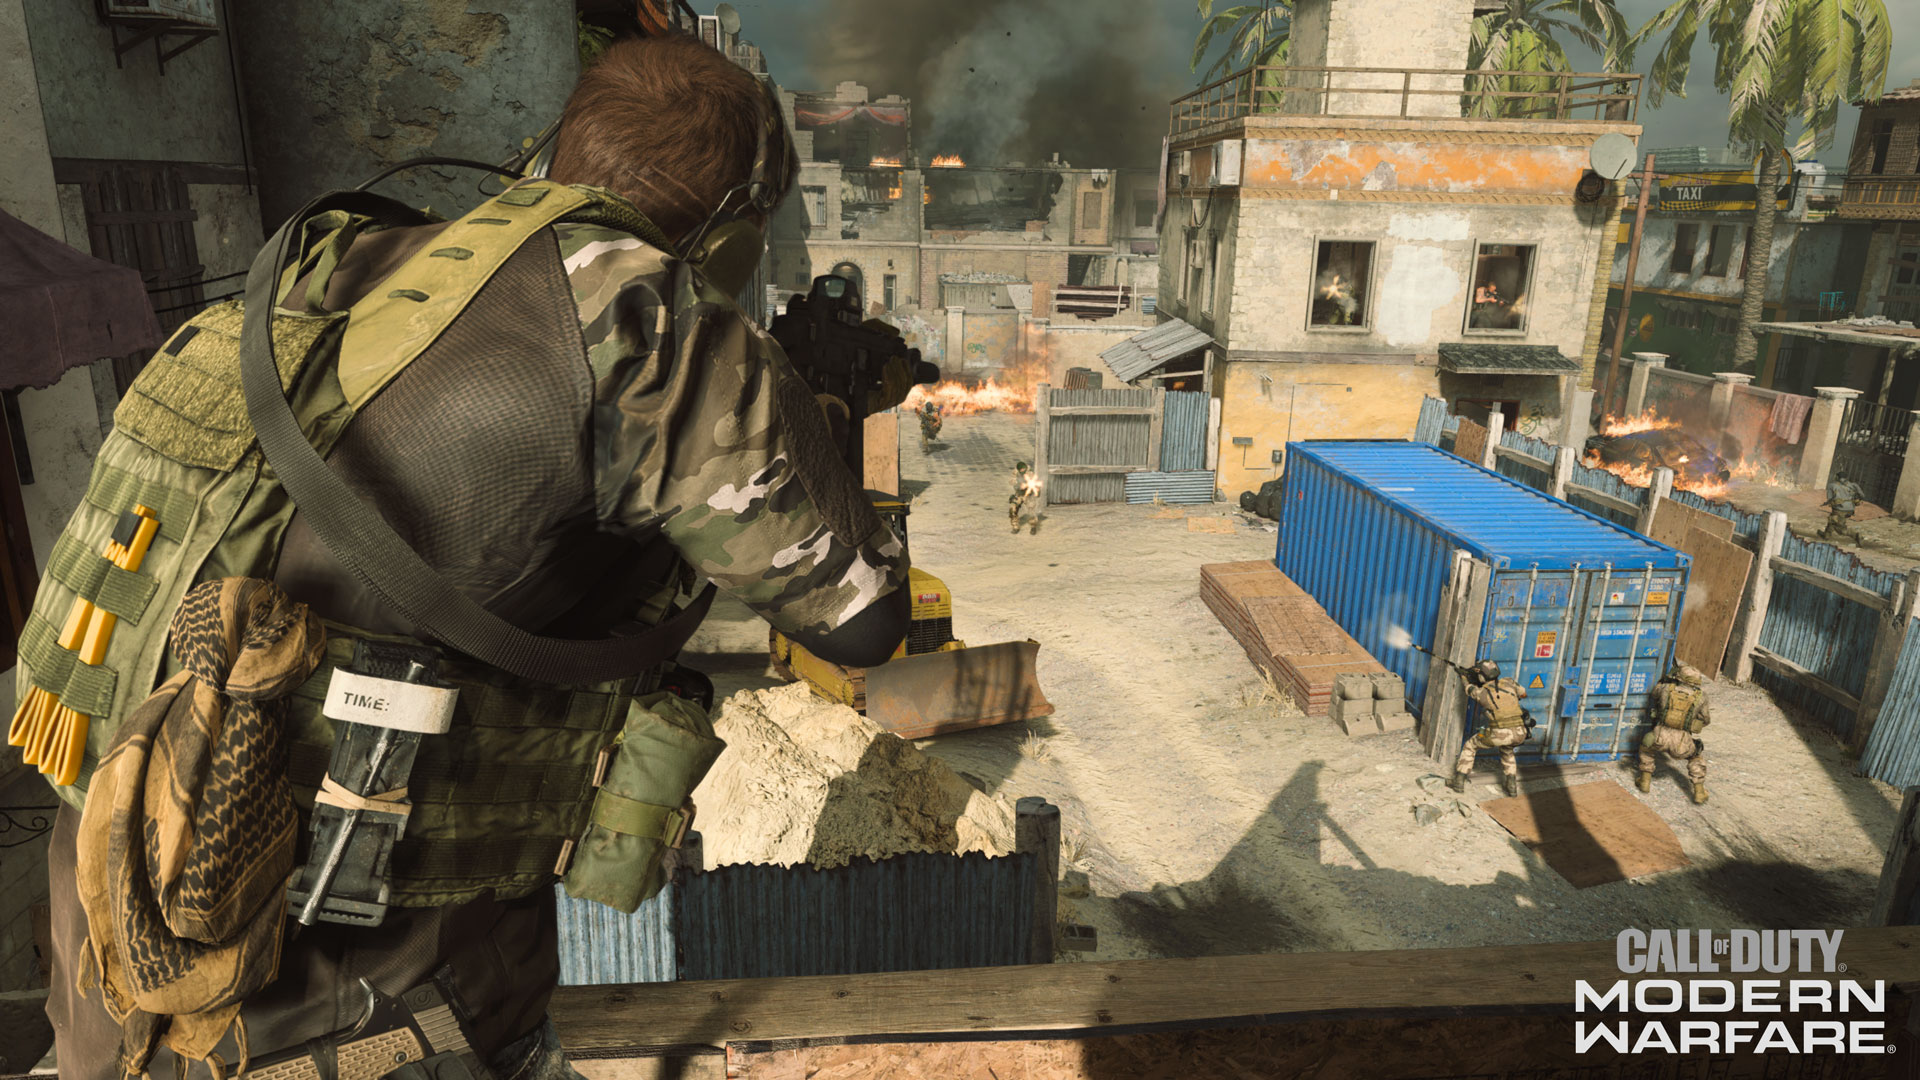 Call Of Duty Modern Warfare Update Version 1 20 Patch Notes And